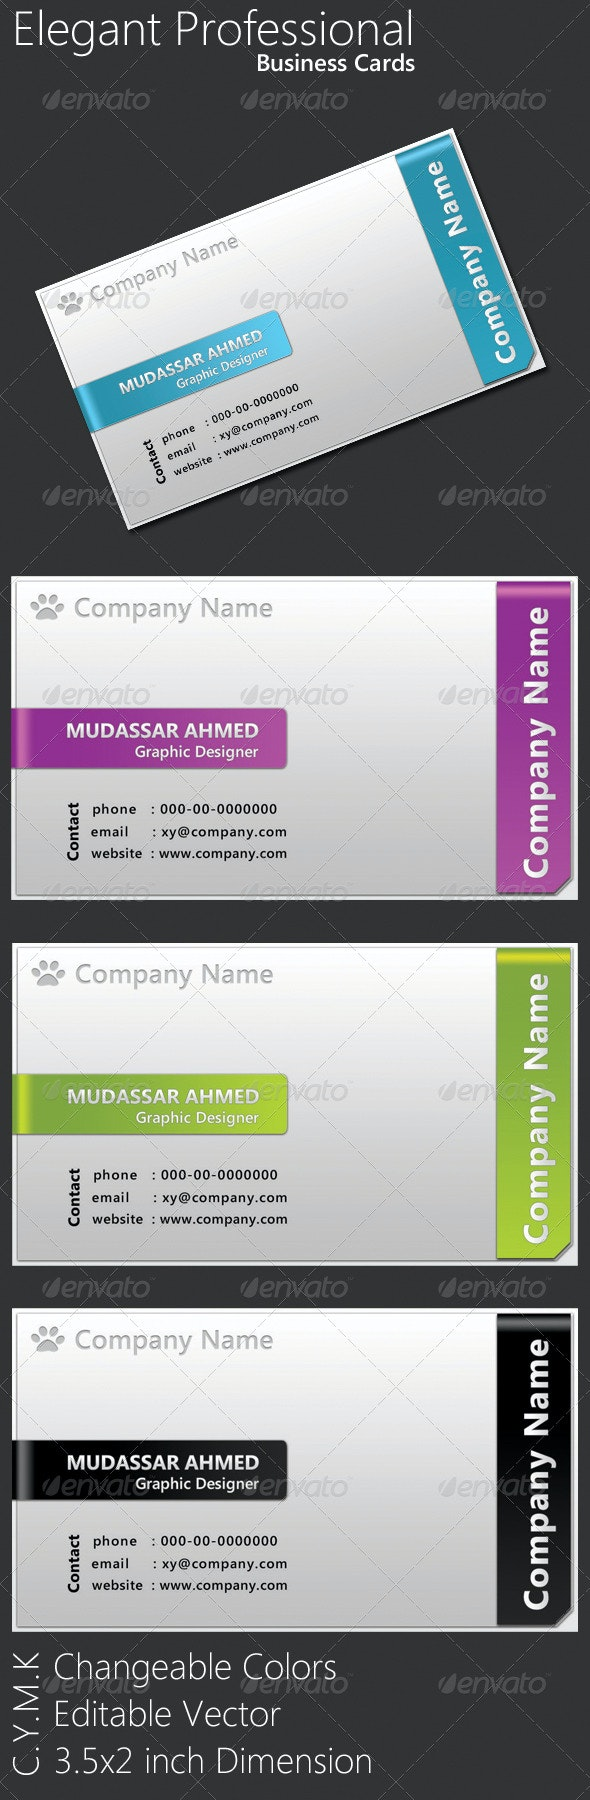 Elegant Professional Business Cards - Corporate Business Cards